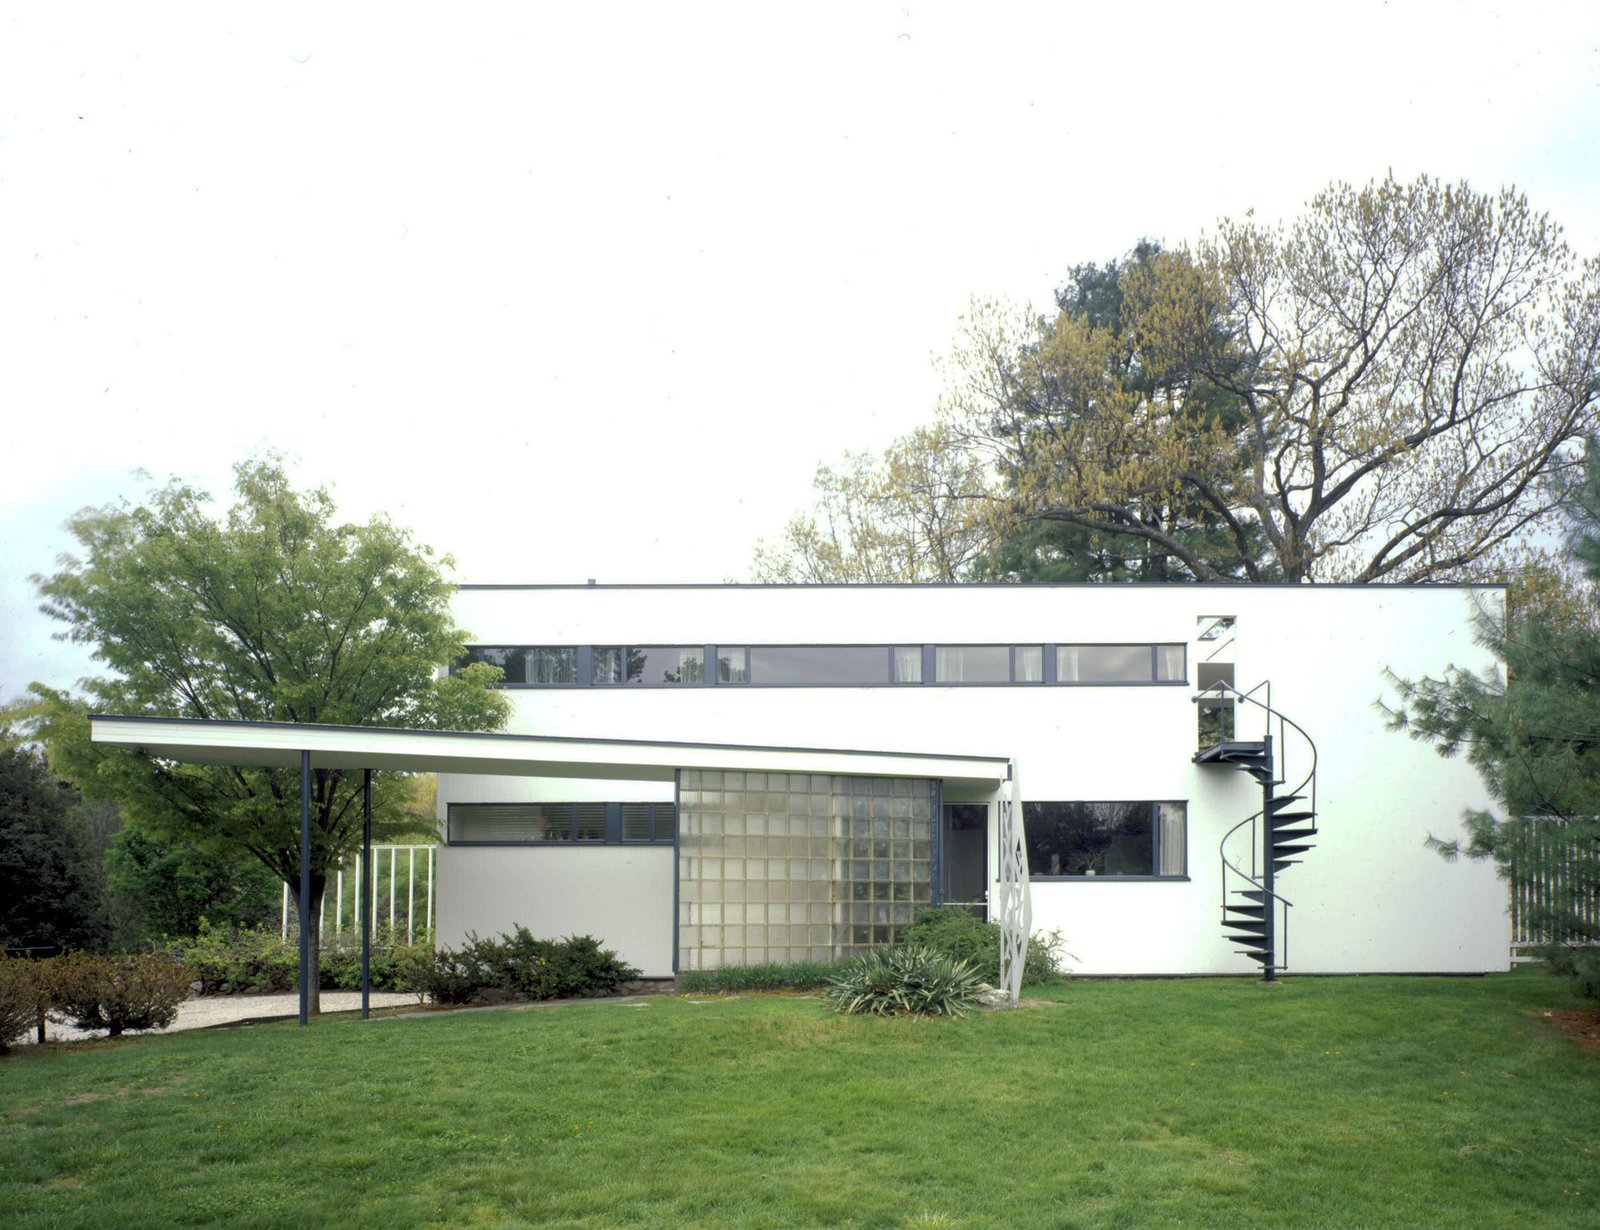 Gropius House, Walter Gropius, 1938, Lincoln, Massachusetts.  When Bauhaus founder Walter Gropius moved to the United States, he settled in Lincoln, Massachusetts, where he built his family home. The house is modest in scale yet revolutionary in impact, embodying the Bauhaus principles of simplicity, economy, and restrained beauty. It combines traditional elements of New England architecture—wood, brick, and fieldstone—with innovative materials rarely used in domestic settings at that time, including glass block, acoustic plaster, chrome banisters, and the latest technology in fixtures. The house is recognized as a National Historic Landmark for its influence in bringing international modernism to the United States. A Getty grant will support the development of a conservation management plan for the building and site, to ensure the preservation of its characteristic features for the home's continued use as a teaching tool to transmit the tenets of Bauhaus design. Grant support: $75,000  Midcentury Homes by Dwell from Iconic Modern Buildings That Will Be Saved with the Help of the Getty Foundation